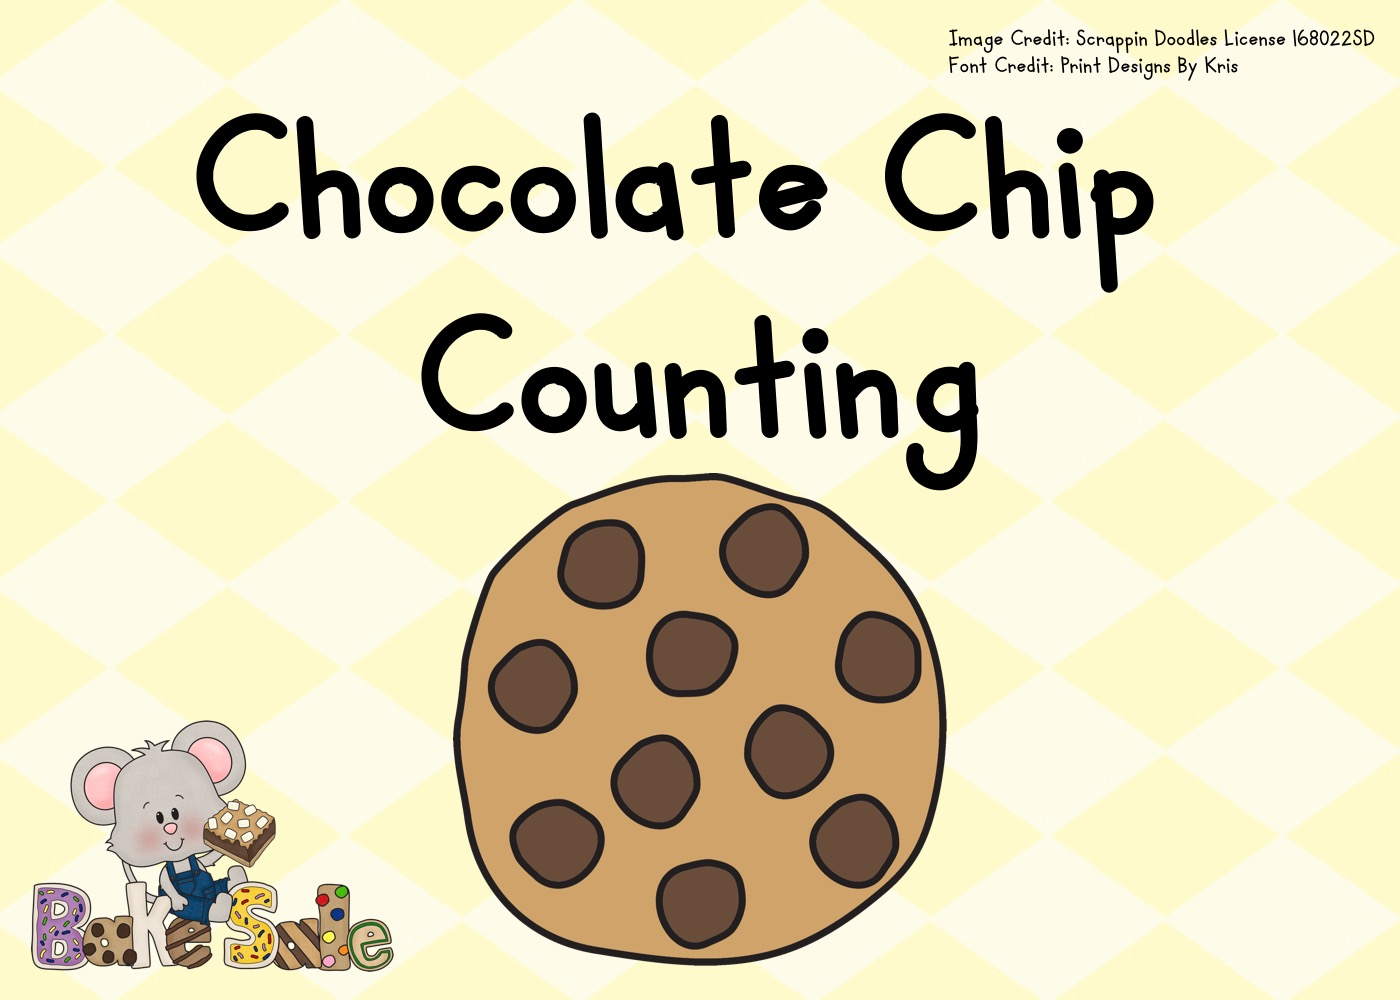 Fun Food Printables for Preschool and Kindergarten   Cookie Themed Counting Games   Hands On Math Homeschool Activities   Kids Classroom Center Ideas and Worksheets #FreePrintableWorksheetsForKids #chocolate #counting #cookie #food